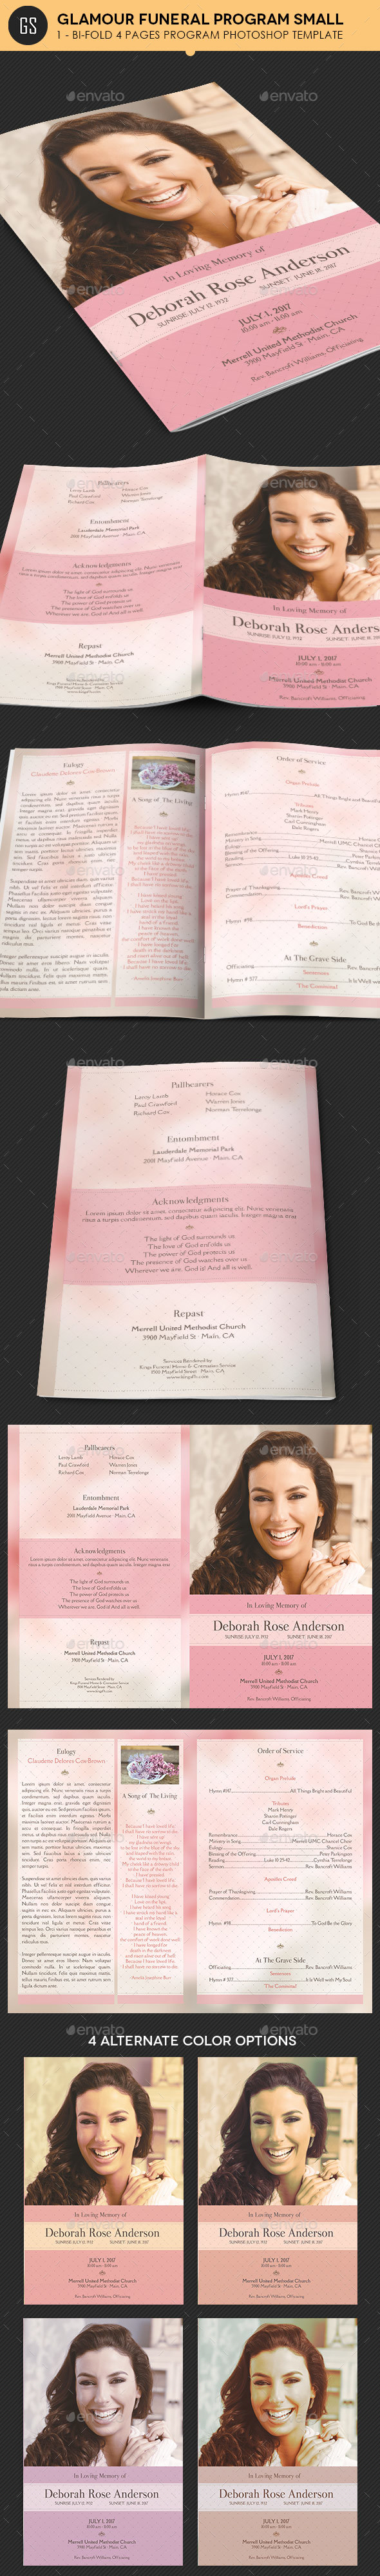 Glamour Funeral Program Small Template - Informational Brochures